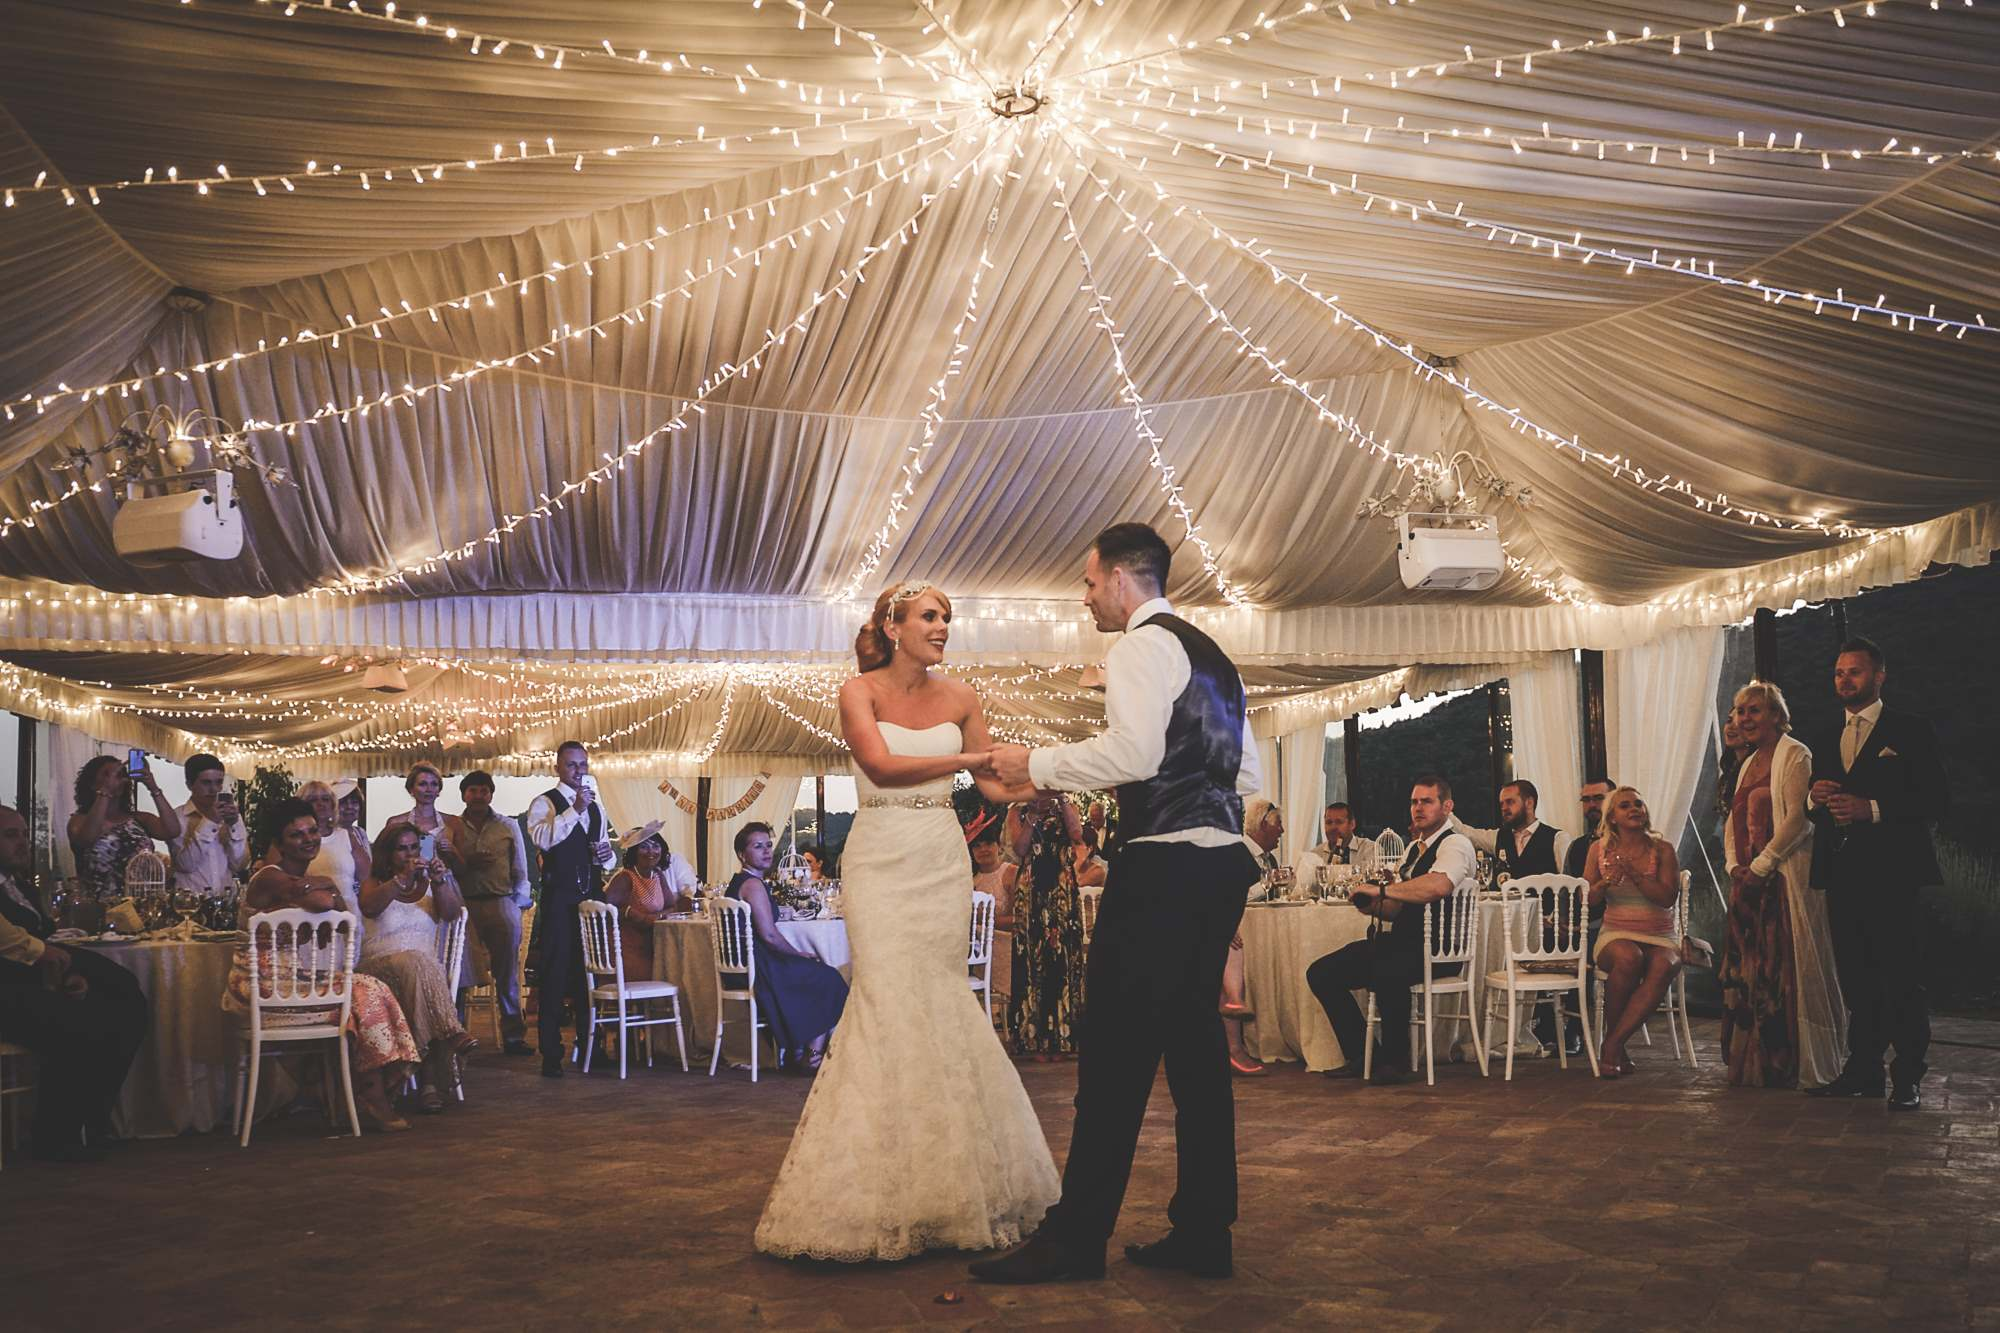 Marquee Wedding Ideas Bride And Groom First Dance